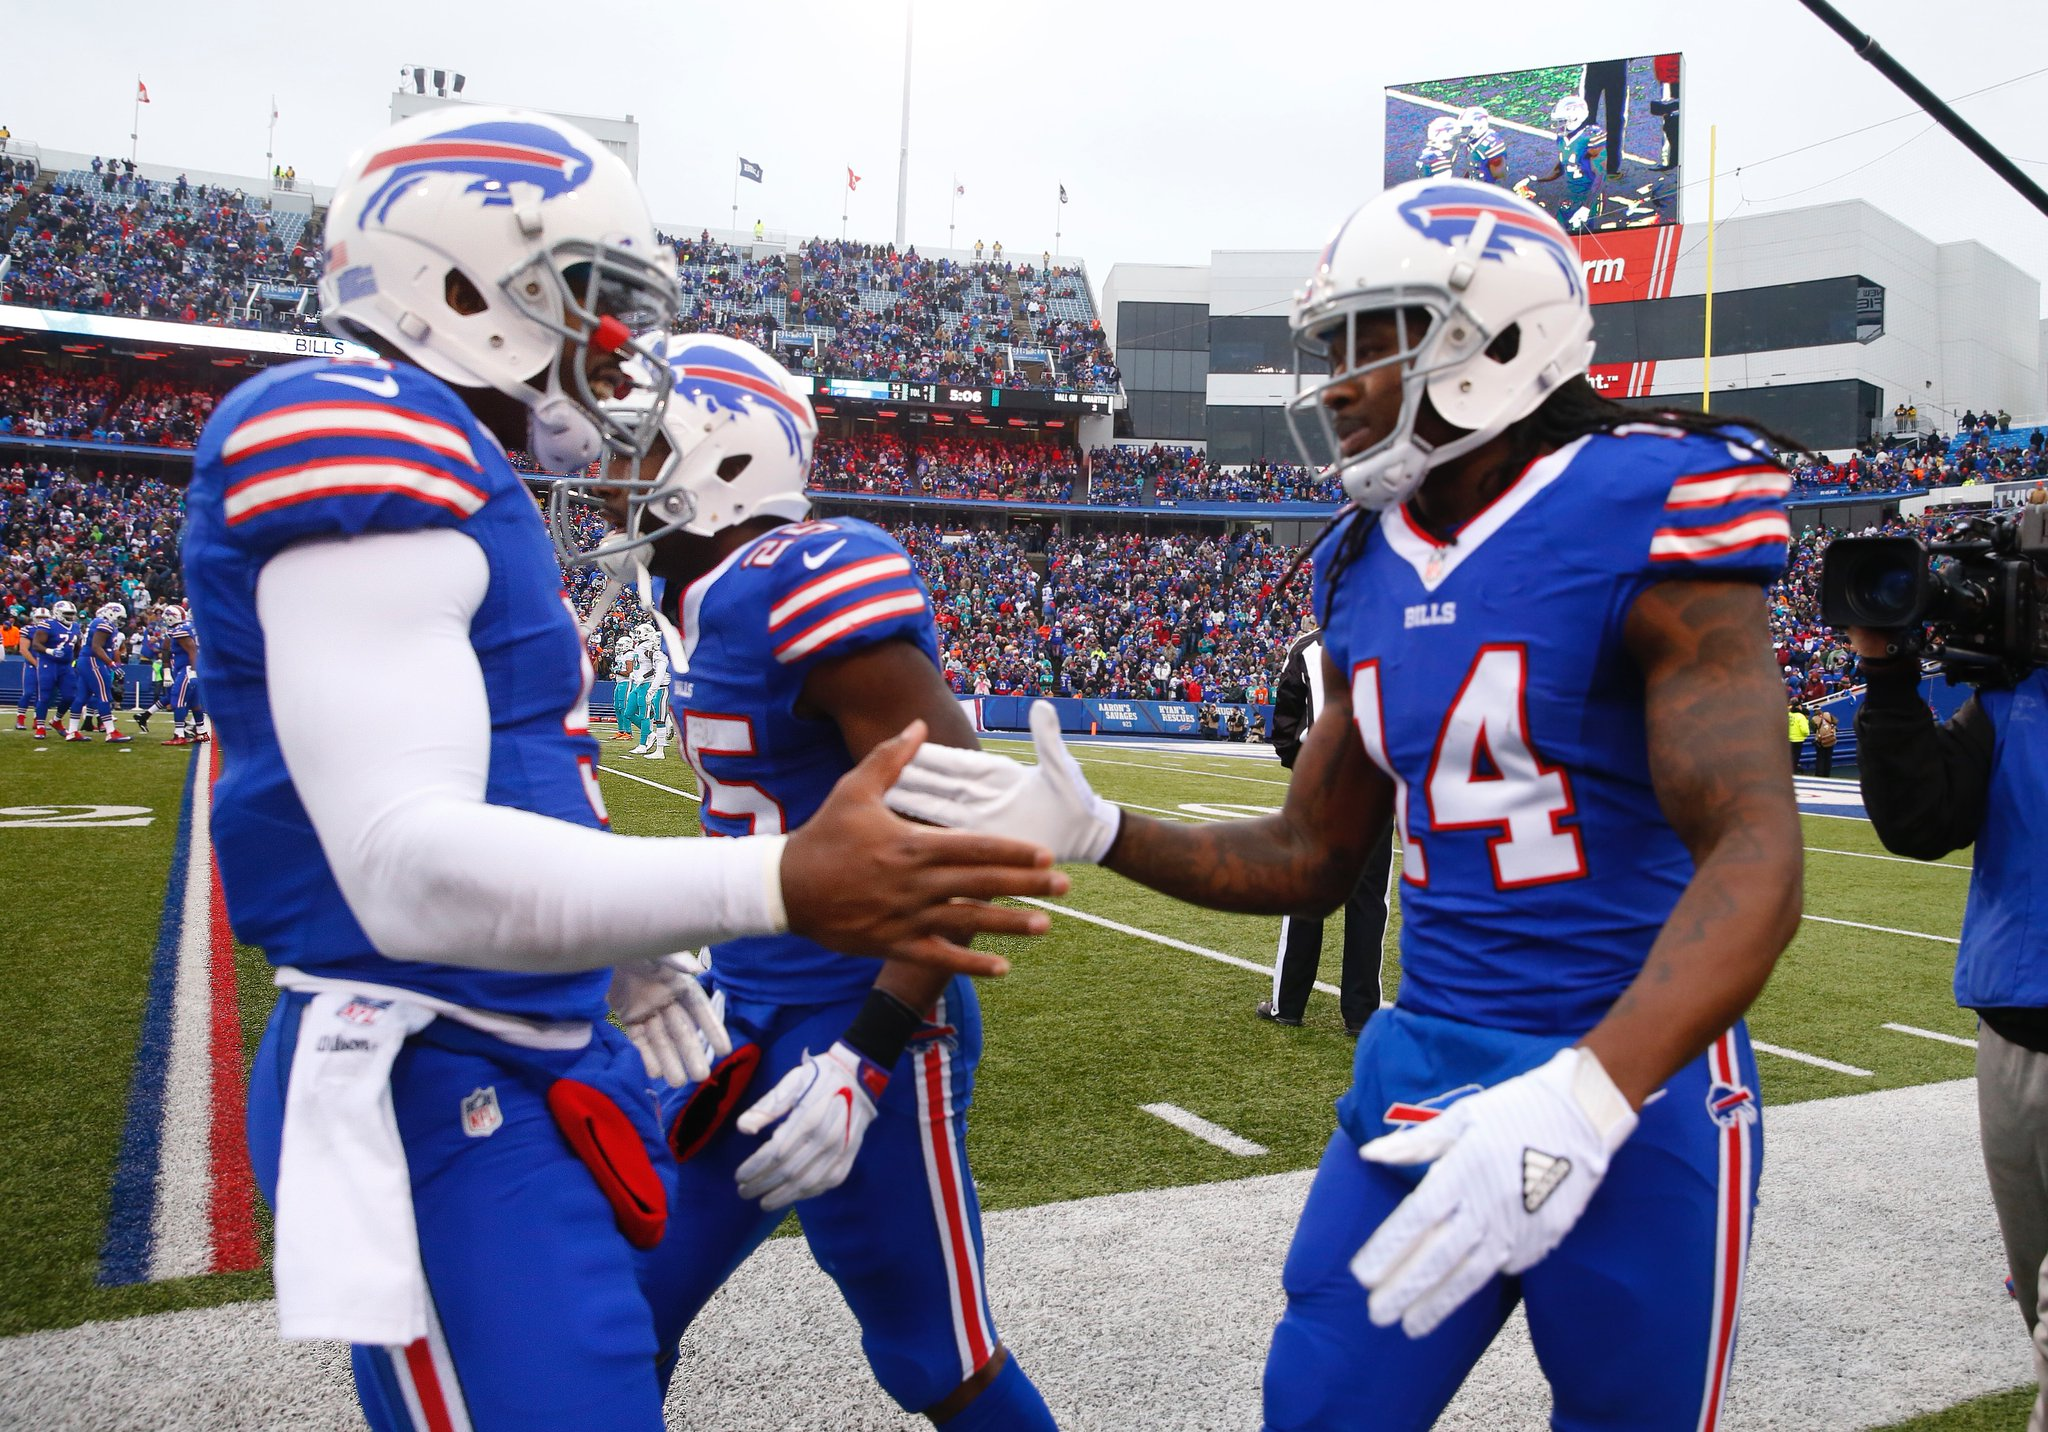 Tyrod Taylor and Sammy Watkins celebrated Watkins' touchdown catch in what was an entertaining game. (Harry Scull Jr./Buffalo News)